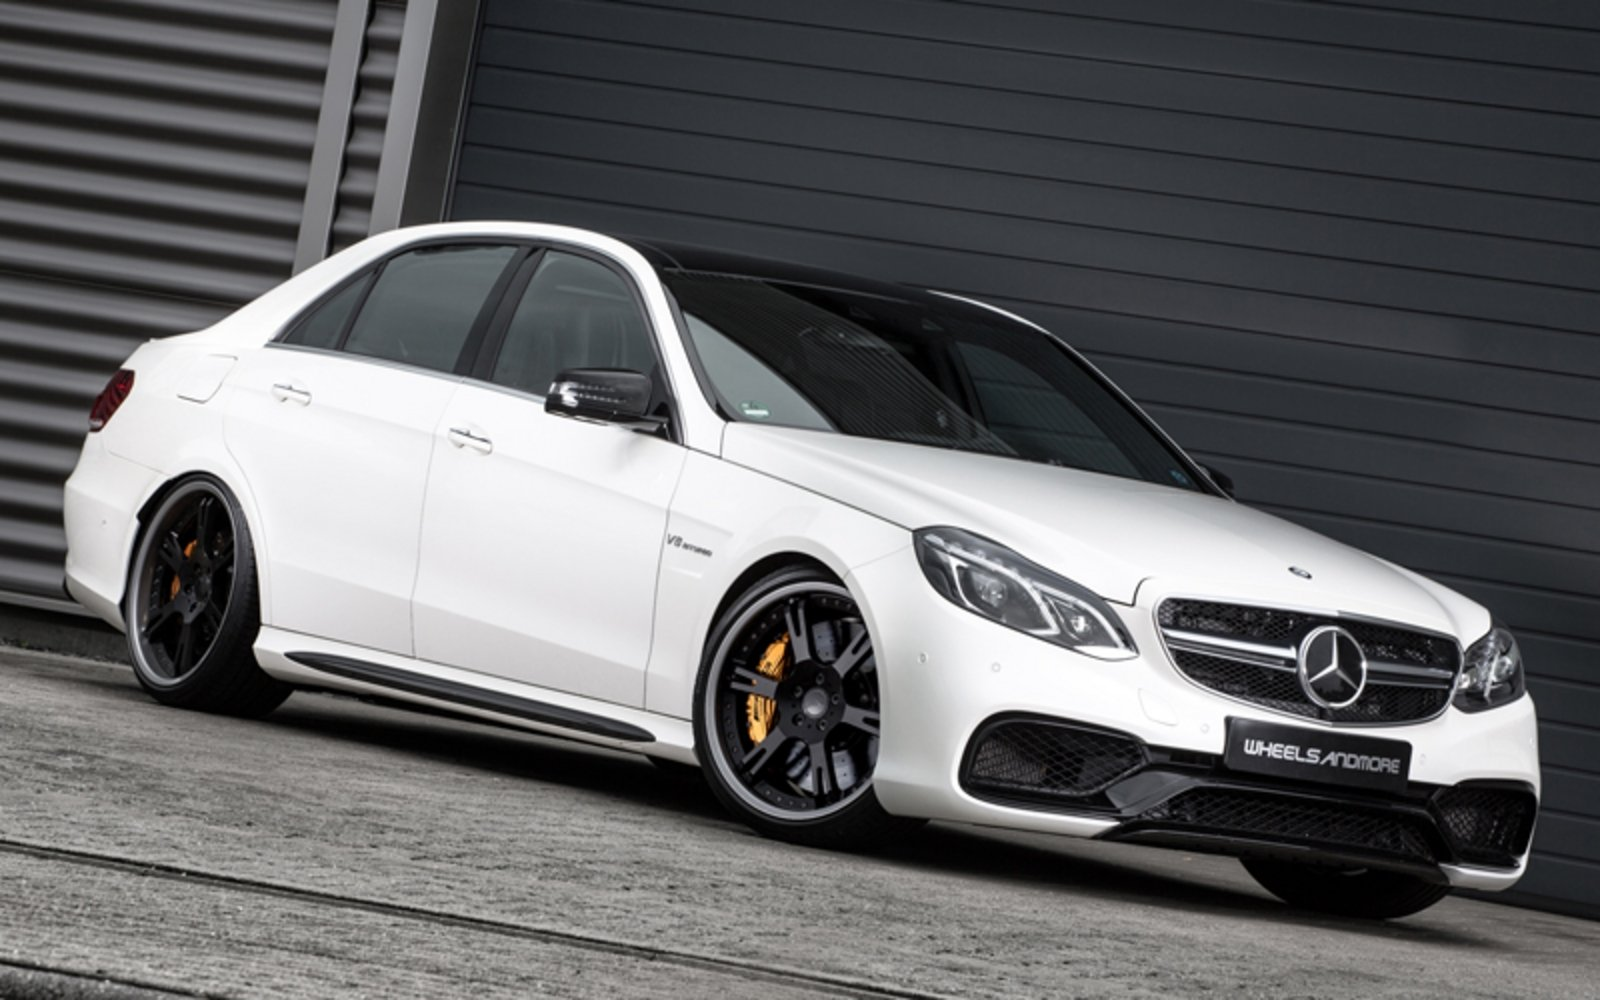 2014 mercedes benz e63 amg s model seven 11 by wheelsandmore review top speed. Black Bedroom Furniture Sets. Home Design Ideas